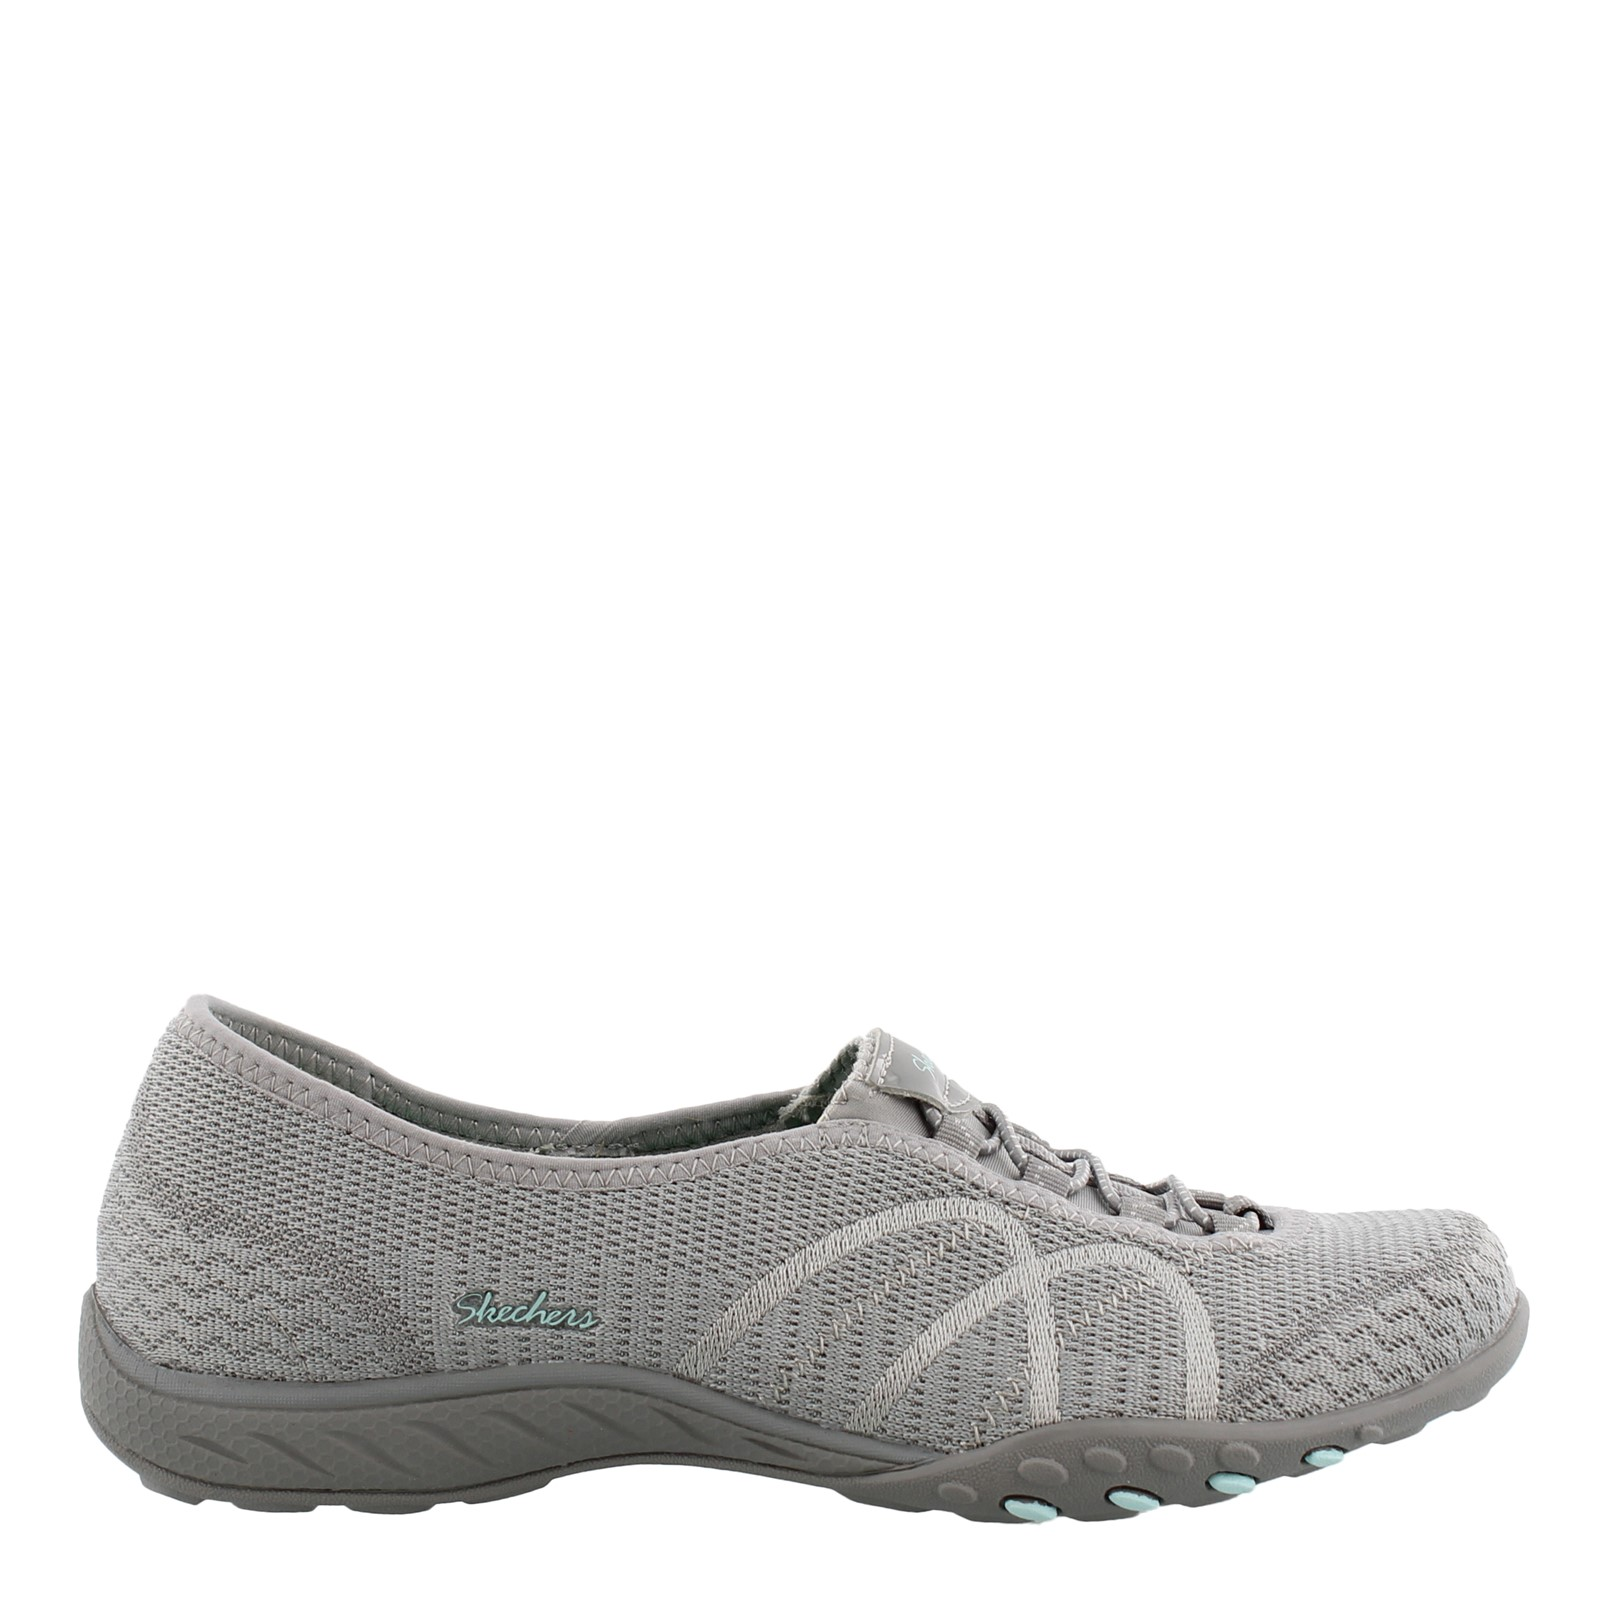 84d919cddcab3 Home; Women's Skechers, Relaxed Fit Breathe Easy Sweet Jam Slip on Shoes.  Previous. default view ...